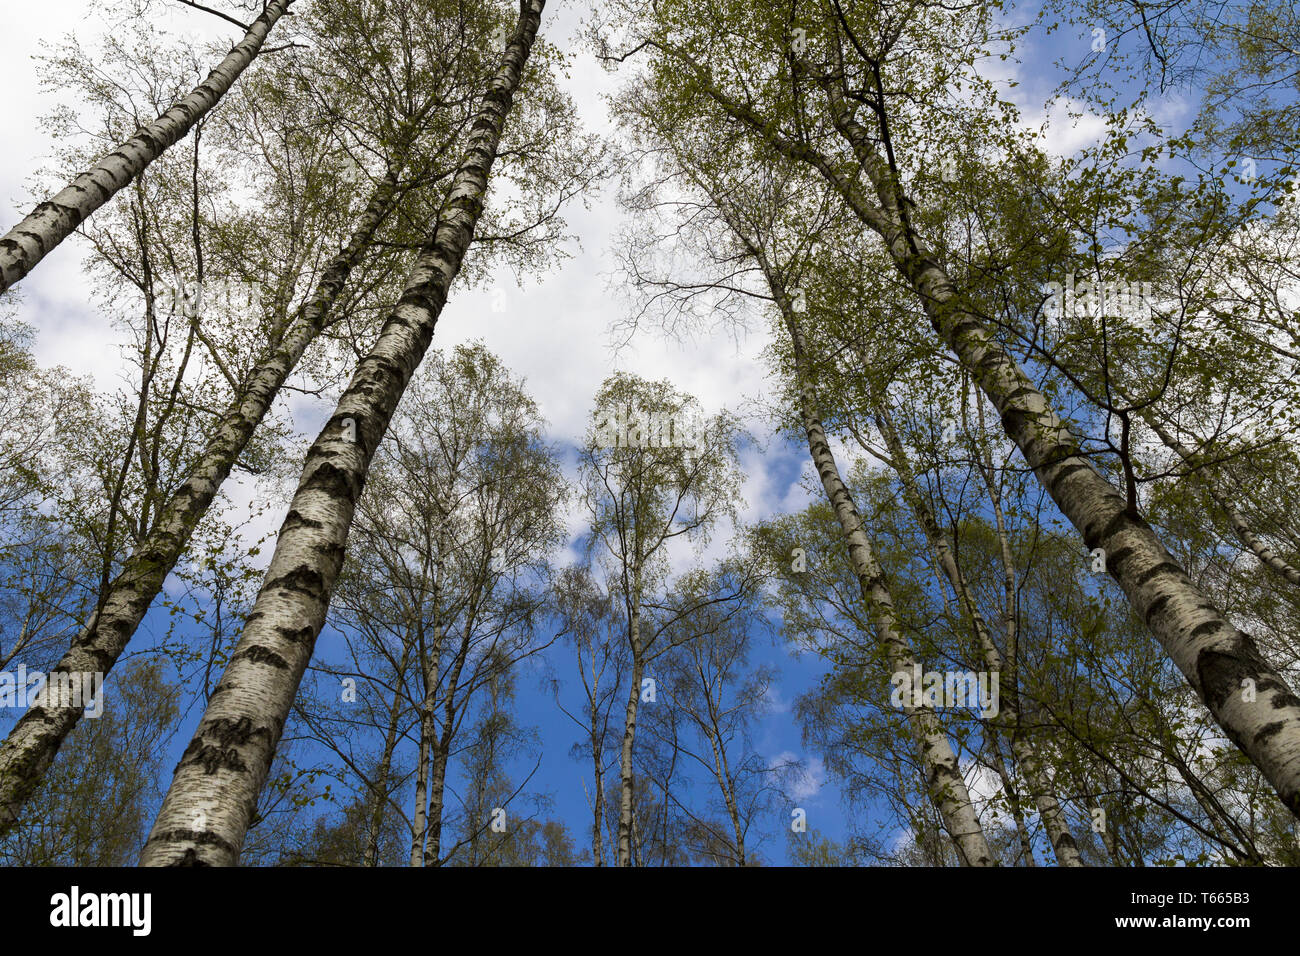 worm's-eye-view of a birch forest - Stock Image